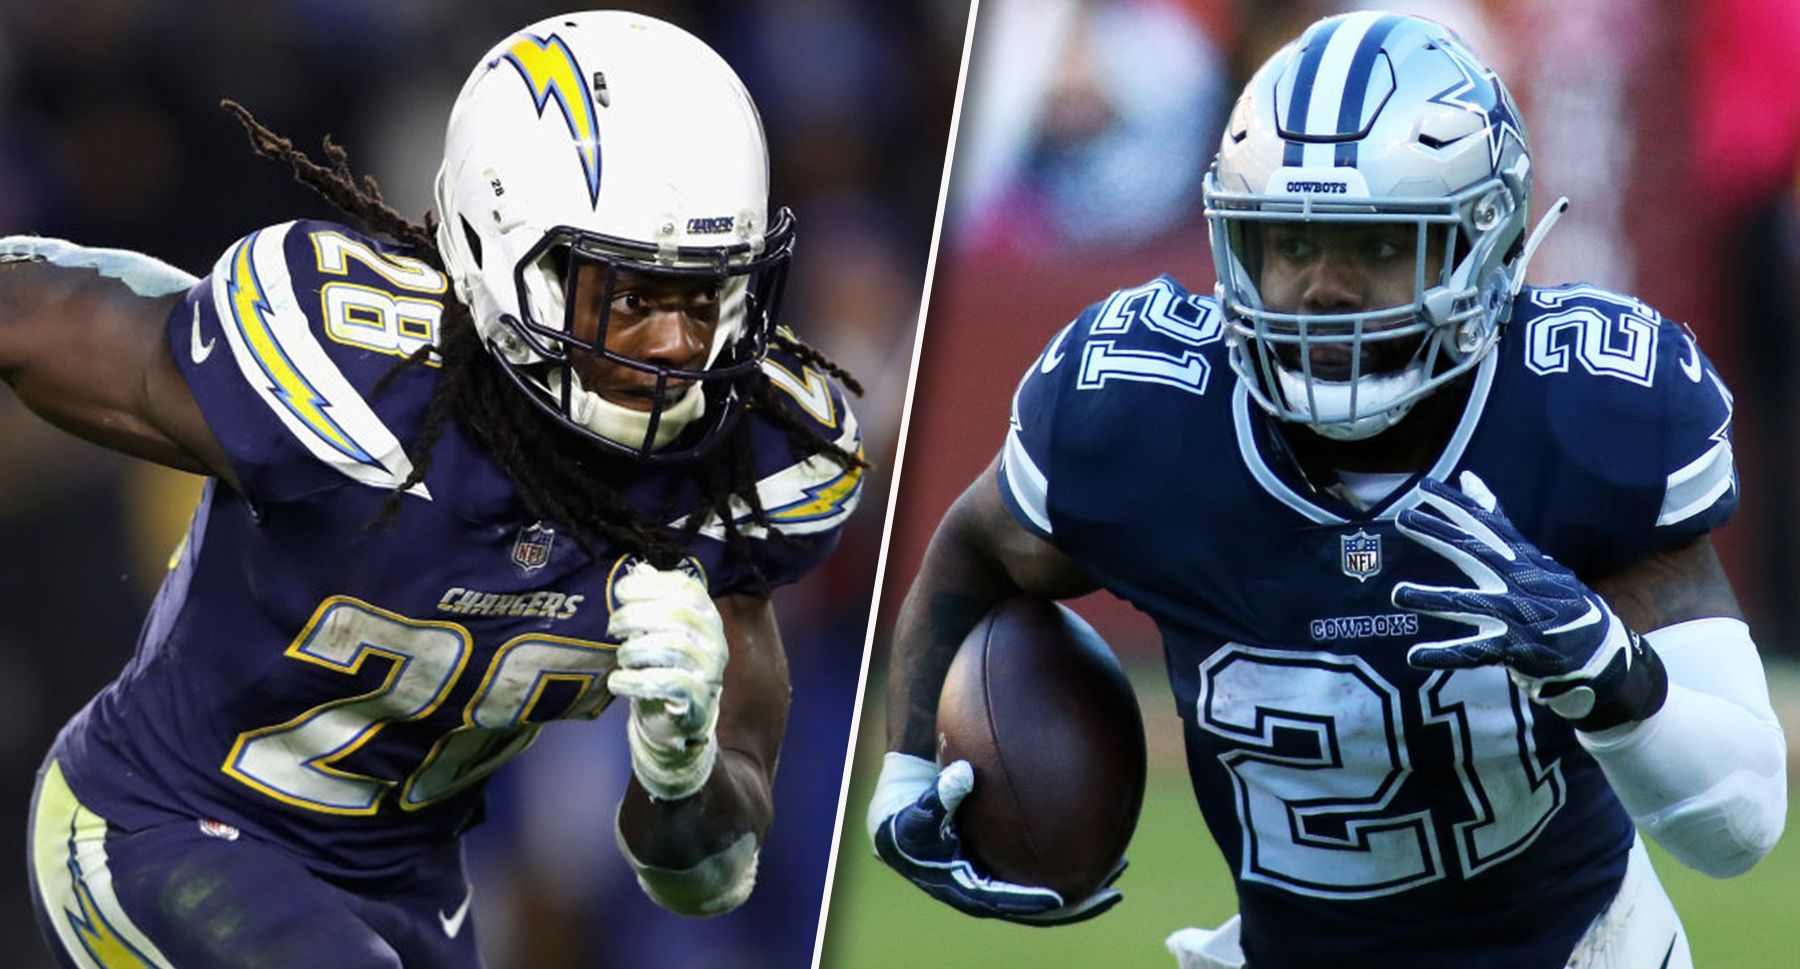 Nfl Rumors Melvin Gordon Trying To Copy Ezekiel Elliot Deal Is Bad For Fantasy Football Owners Ezekiel Elliot Fantasy Football Fantasy Football Players